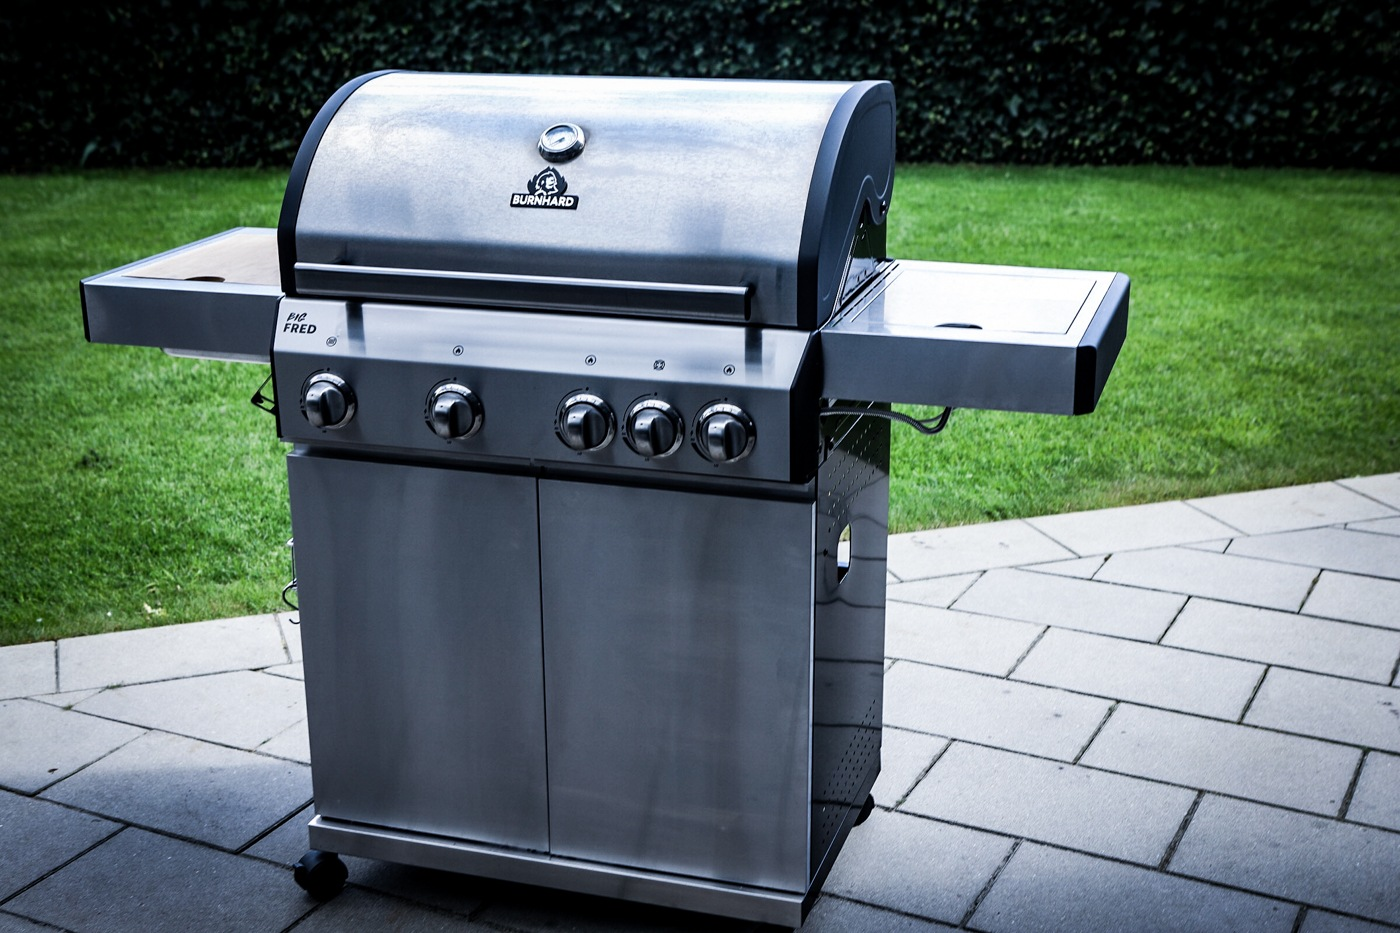 Outdoorküche Gasgrill Test : Justus gasgrill apollo edelstahl youtube